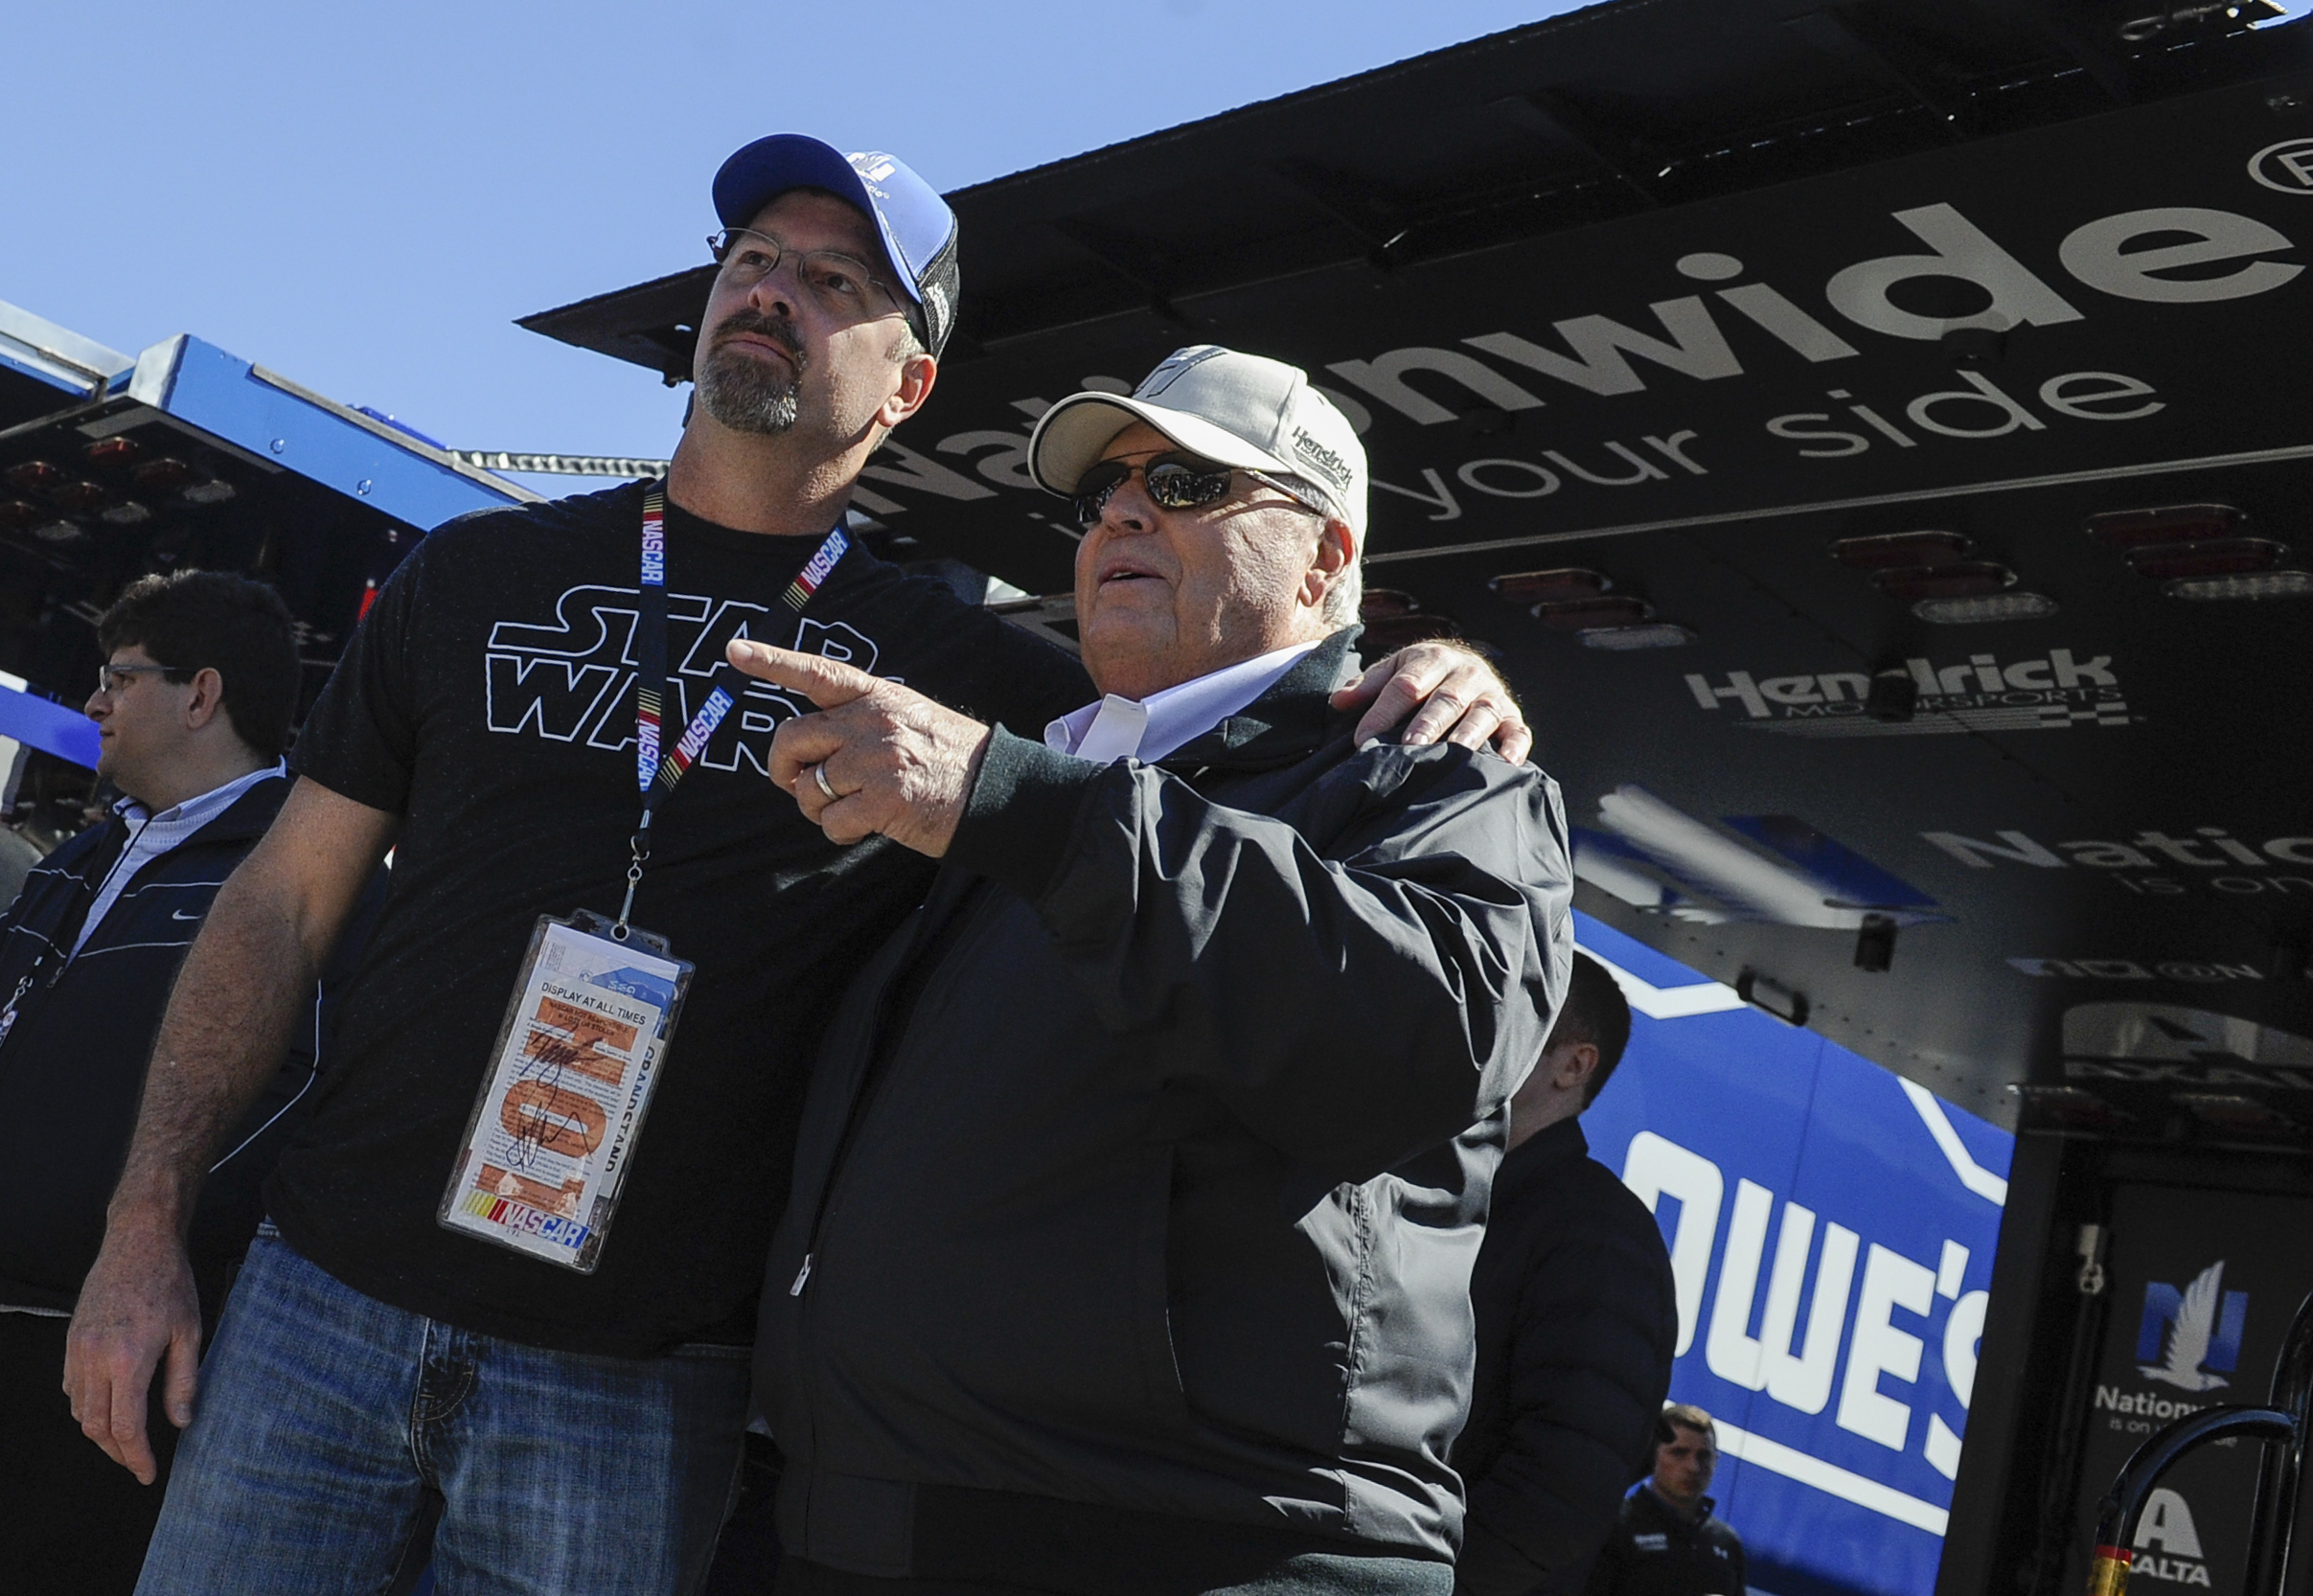 Team Owner Rick Hendrick, right, has pictures made with fans before a NASCAR Sprint Cup Series auto race at Atlanta Motor Speedway Sunday, Feb. 28, 2016, in Hampton, Ga. (AP Photo/John Amis)